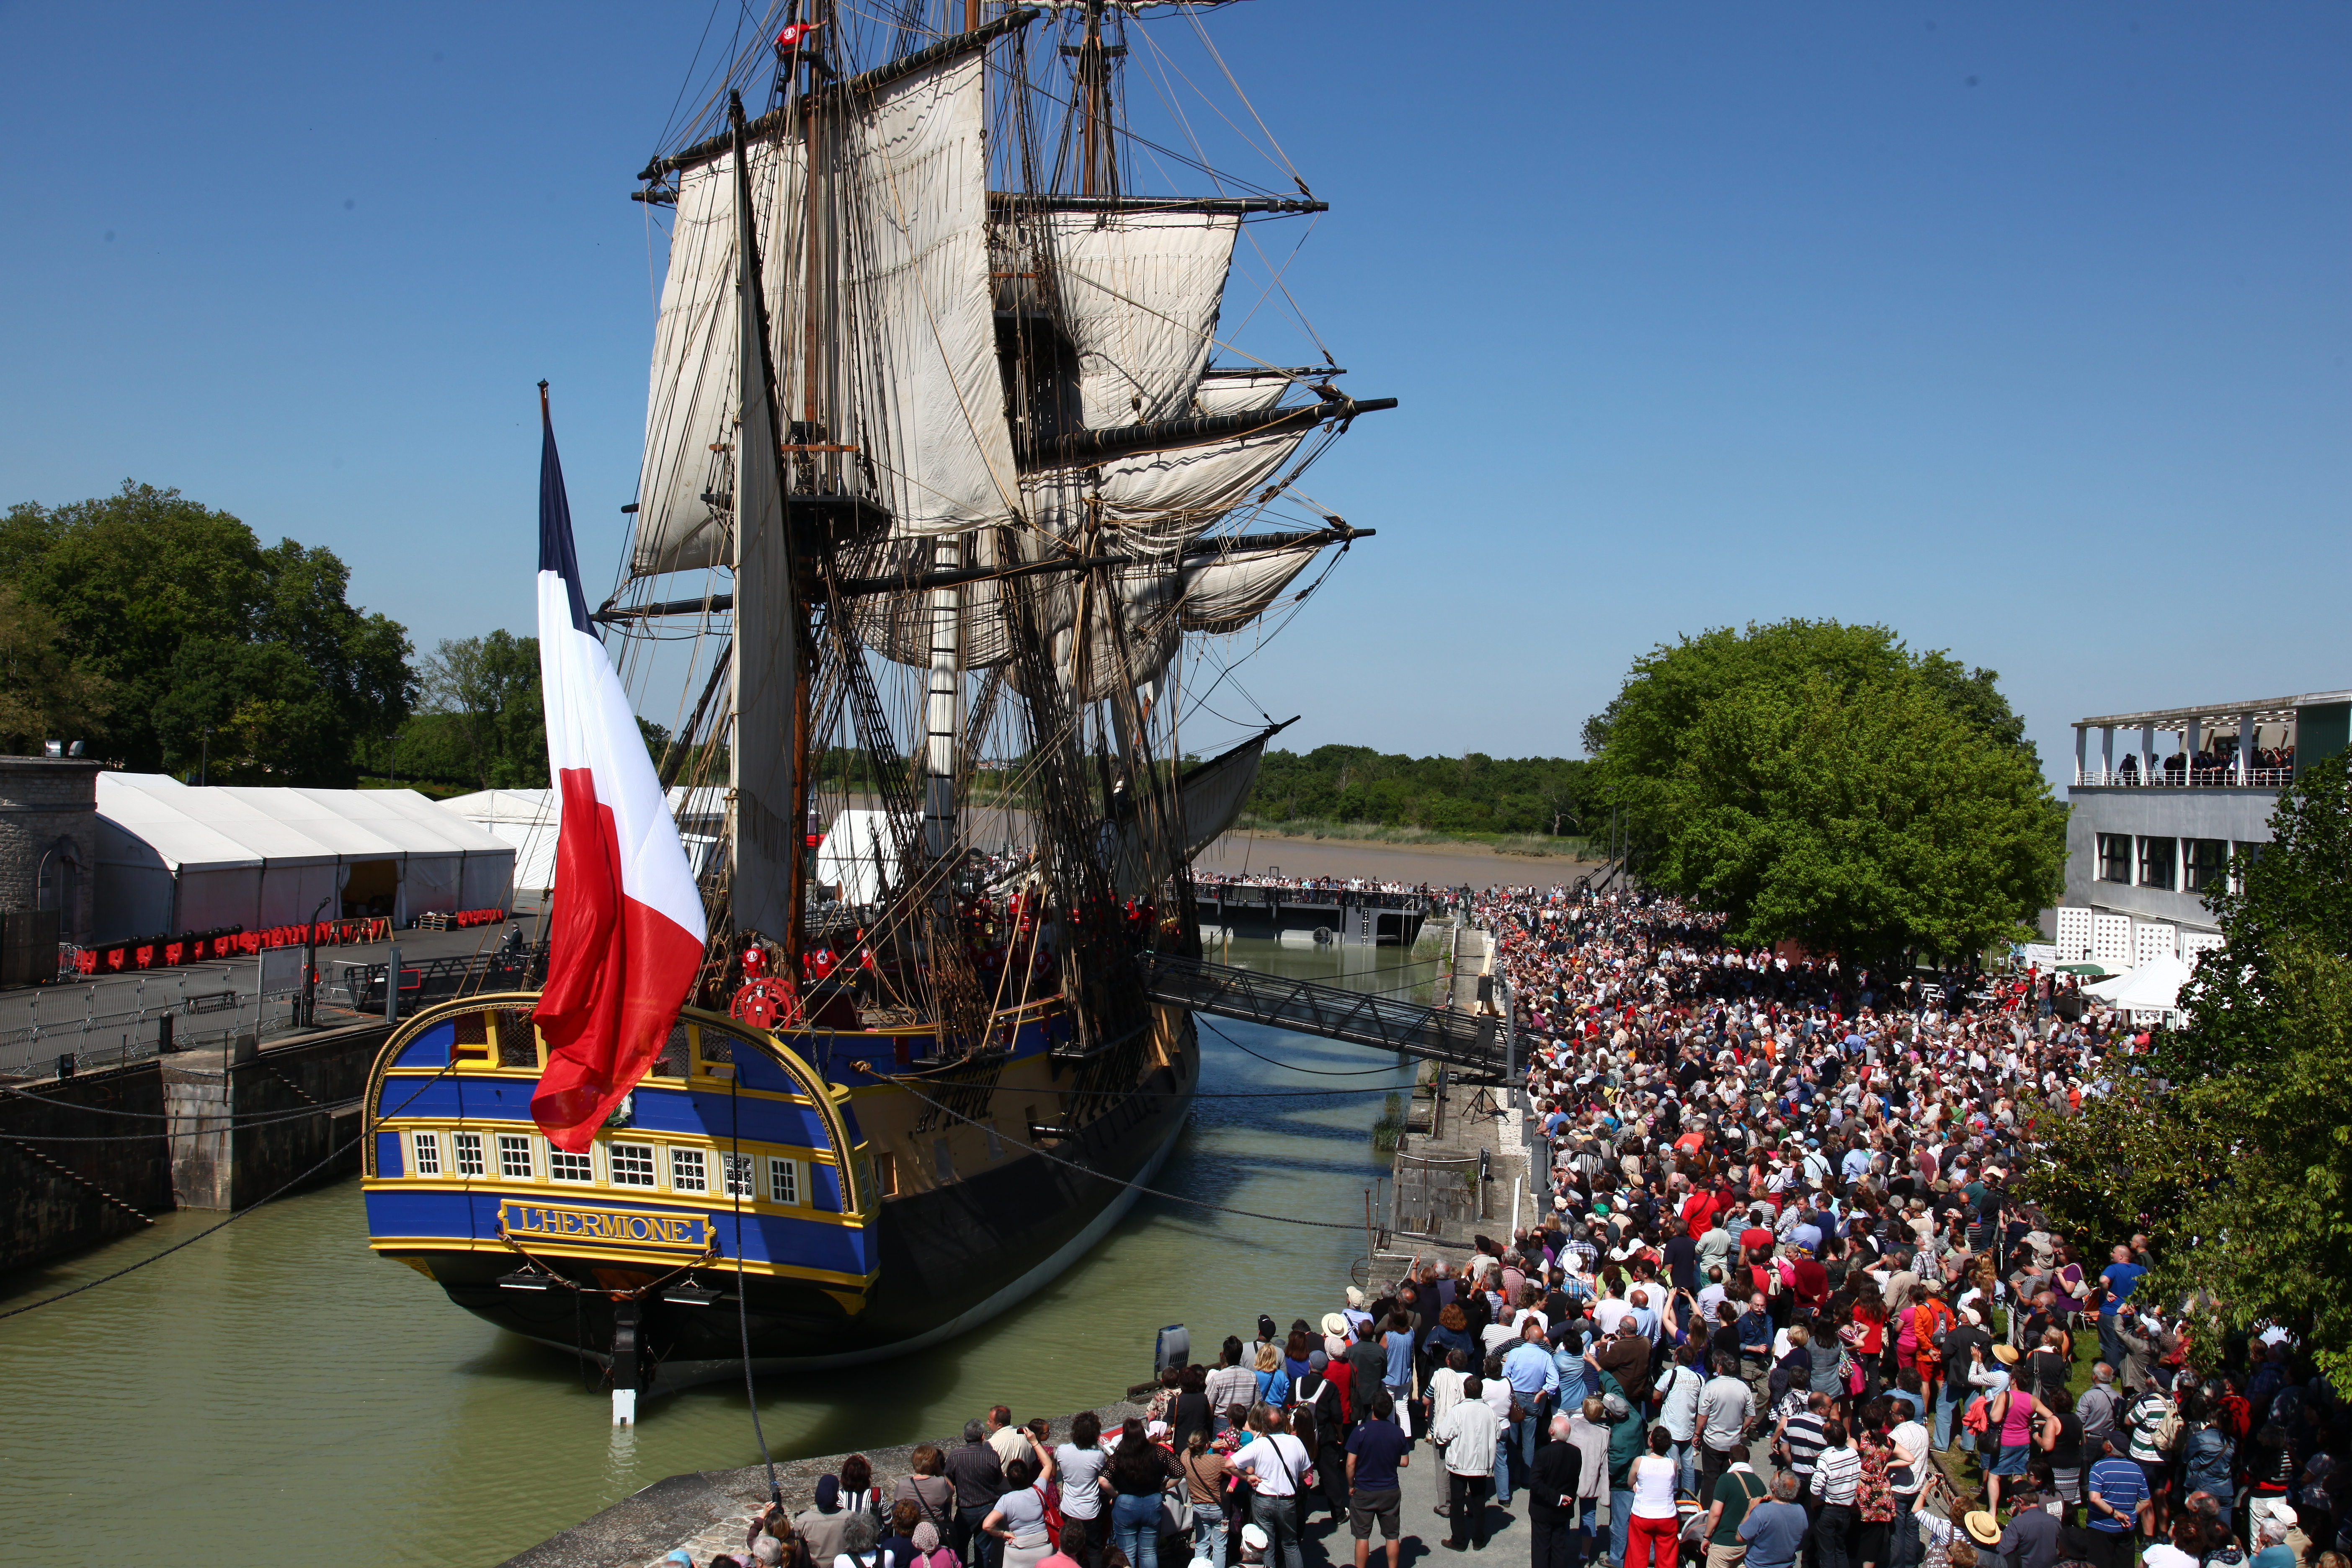 A photo of the Hermione replica, courtesy of the Friends of L' Hermione